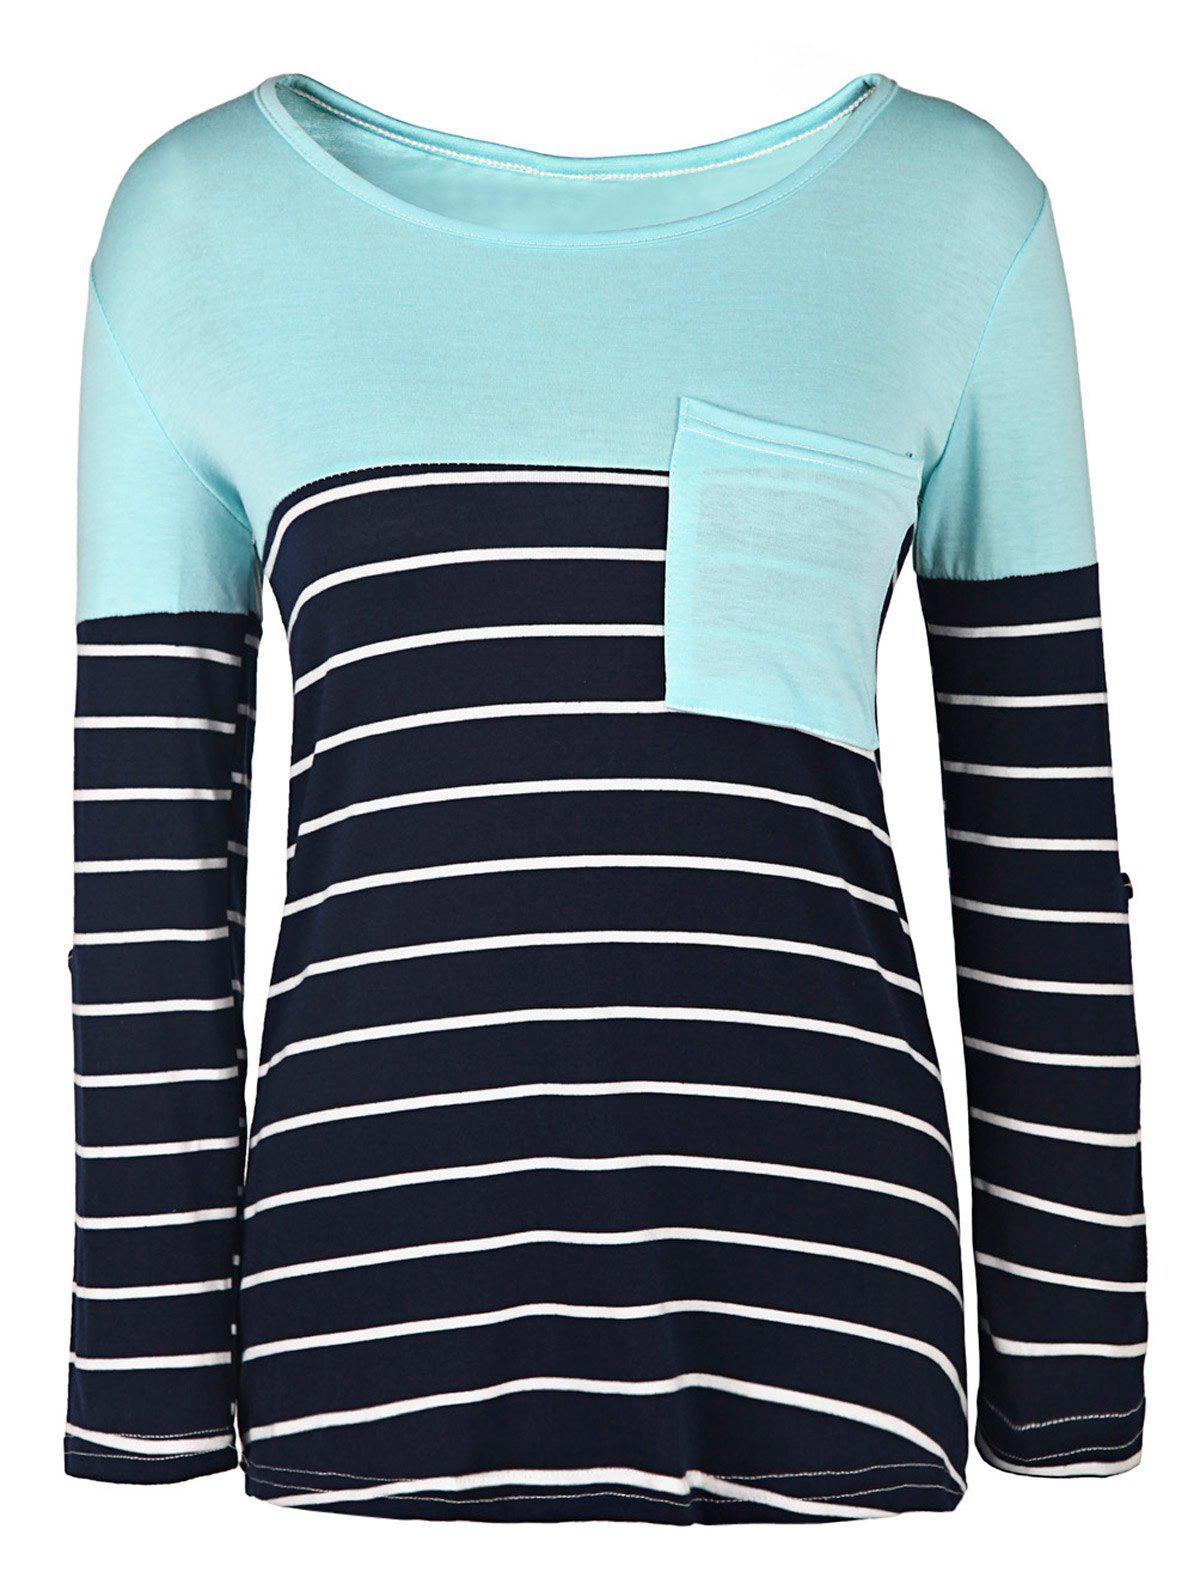 Casual Style 3/4 Sleeve Scoop Neck Stripe Splicing Women's T-Shirt - BLUE/WHITE S